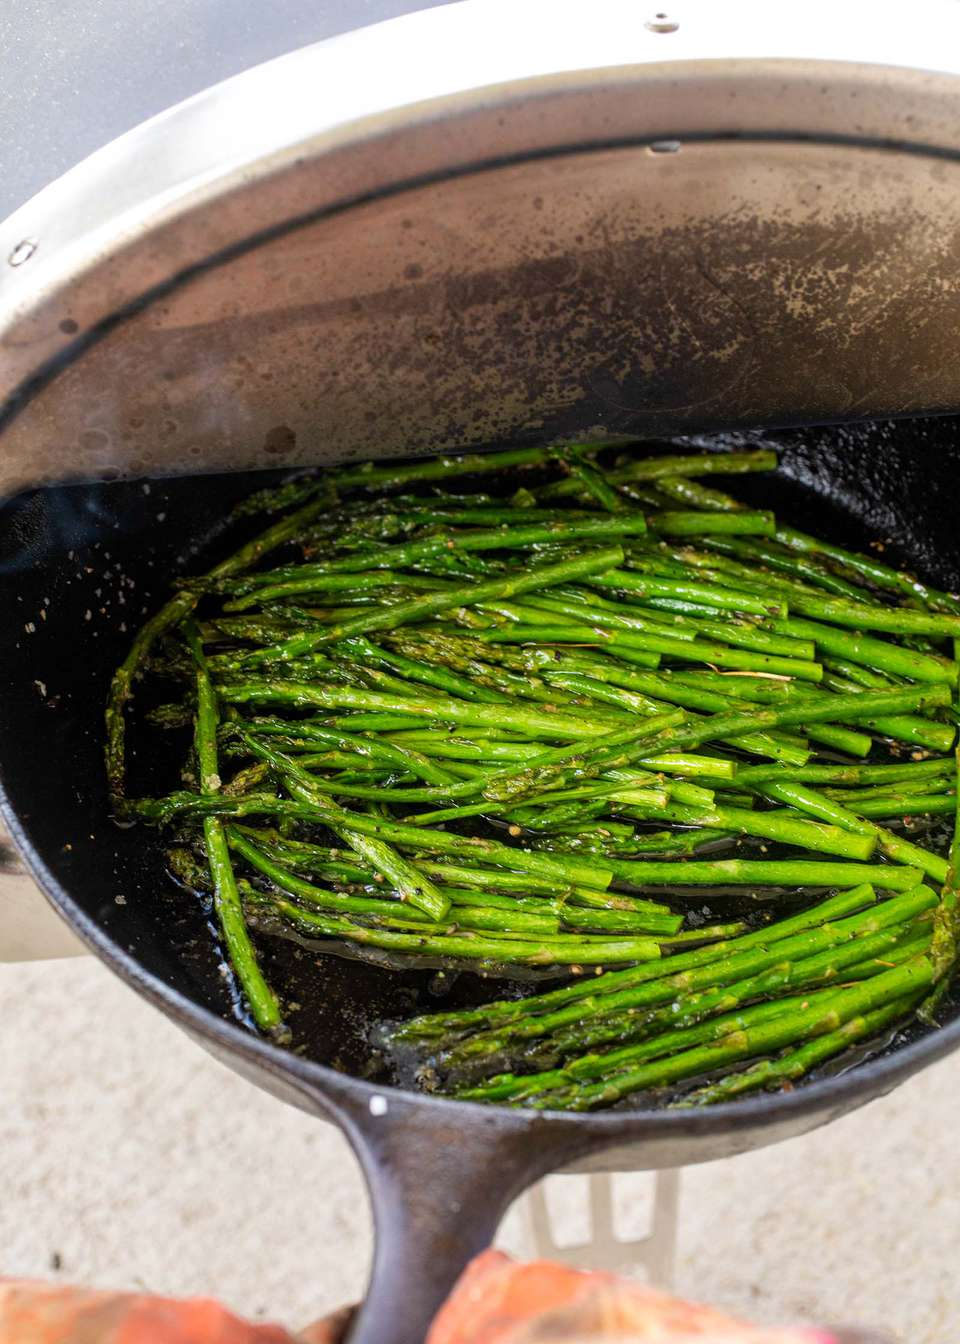 Cast iron skillet with asparagus being cooked inside a roccbox.